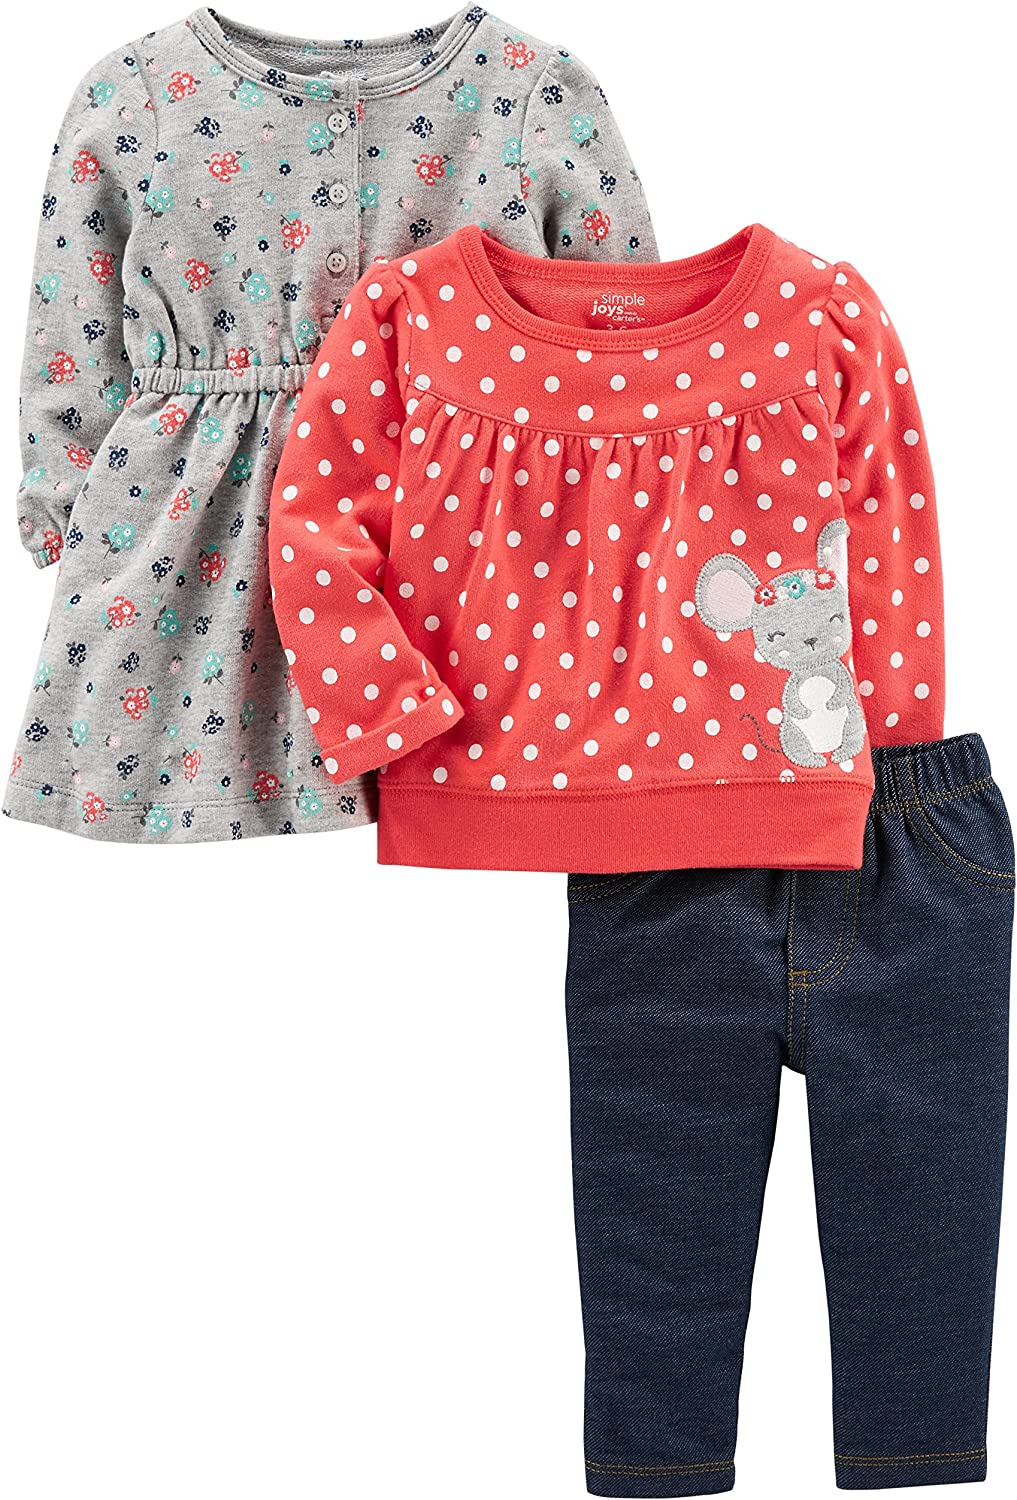 Dress Simple Joys by Carters Baby Girls 3-Piece Long-Sleeve Top and Pants Playwear Set